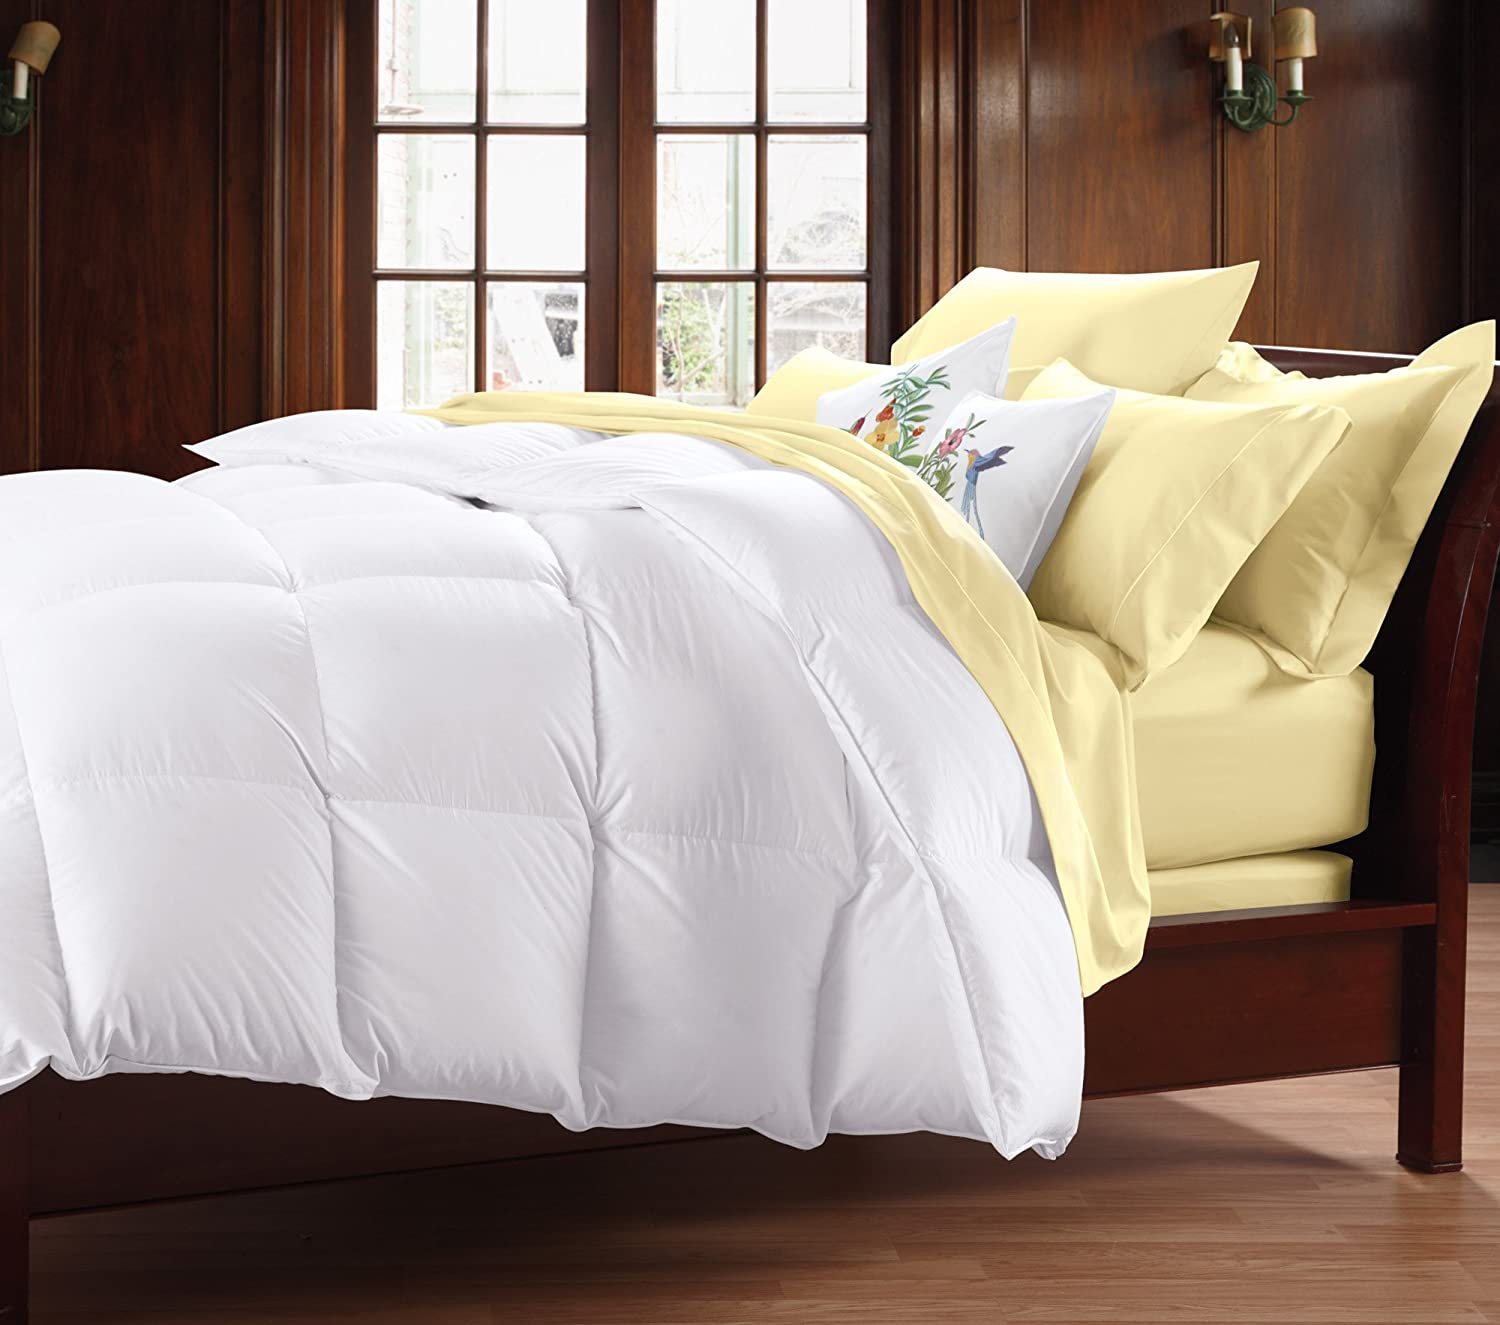 Cuddledown 400TC Down Comforter, Full, Level 4, White